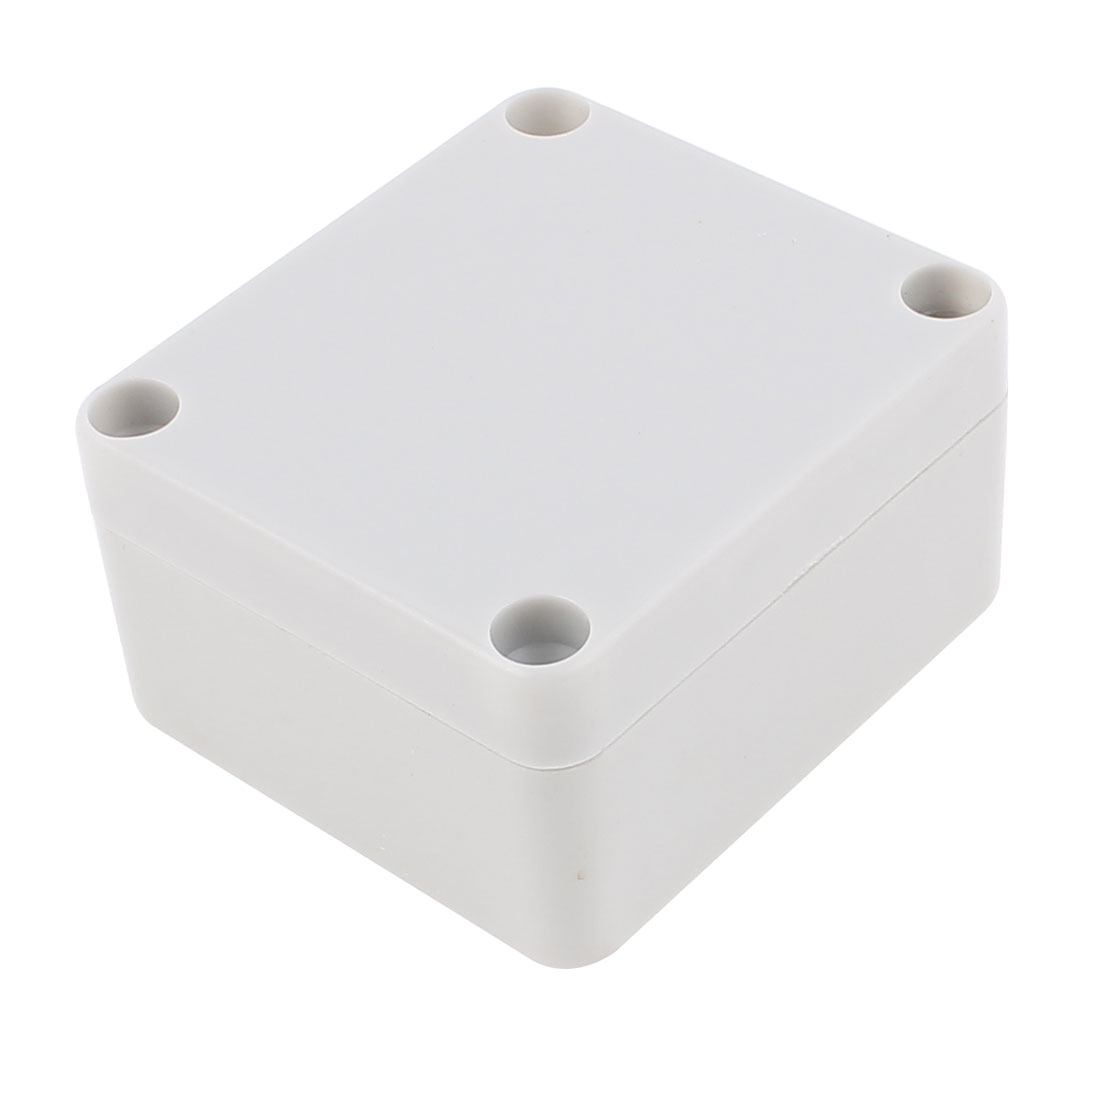 63 x 58 x 35mm Dustproof IP65 Junction Box DIY Terminal Connecting Box Enclosure